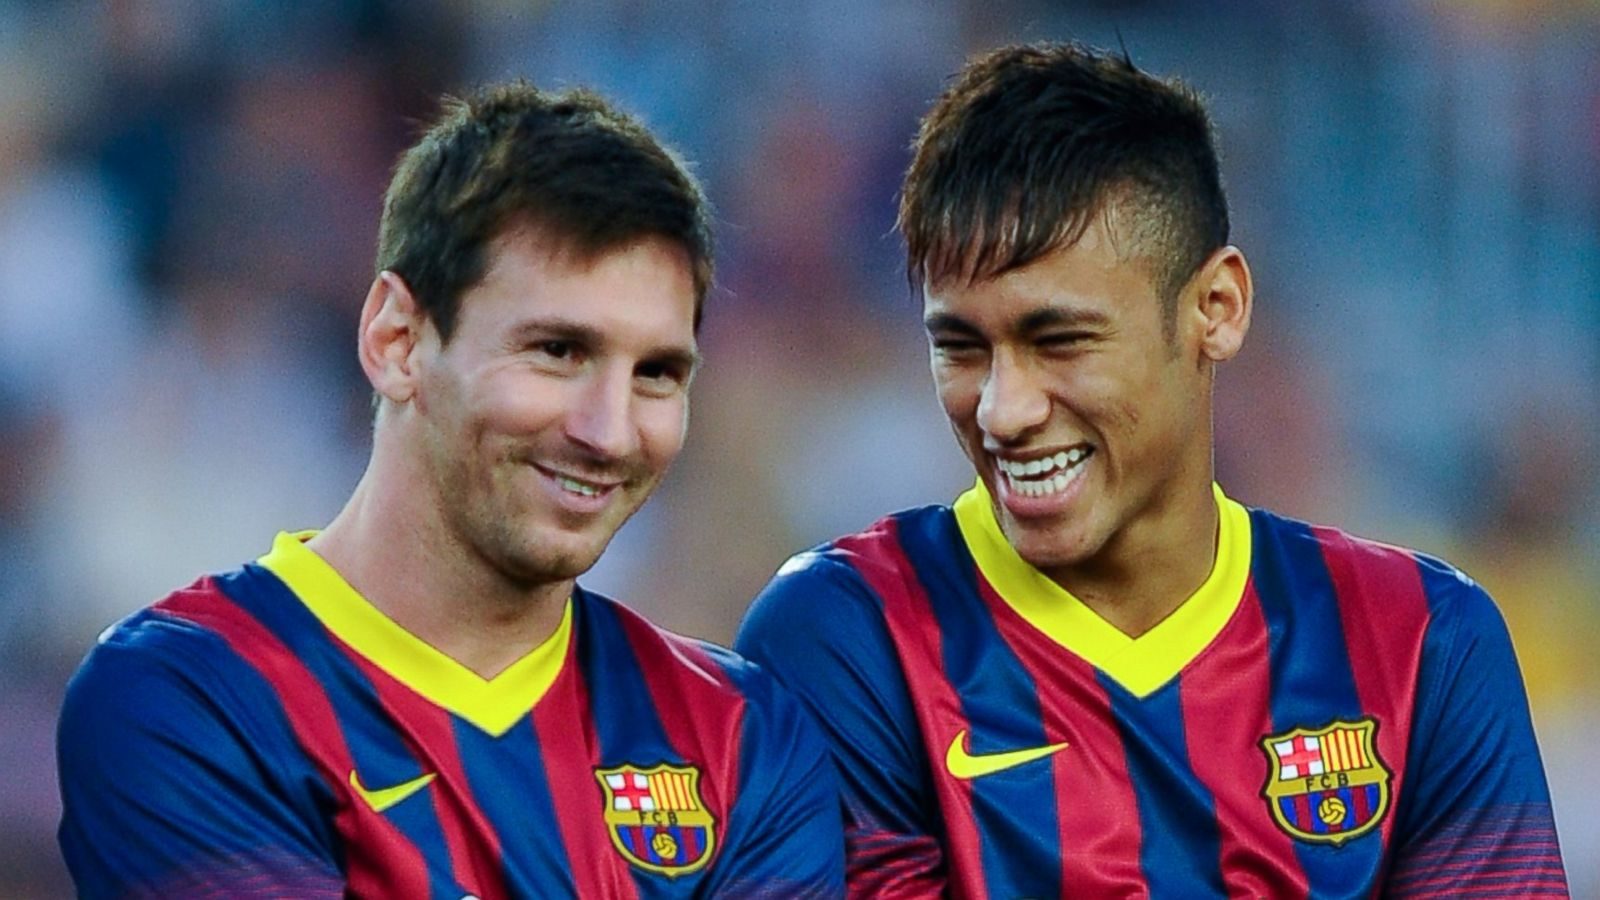 Neymar And Messi Wallpaper  2  Neymar And Messi Wallpaper 2013